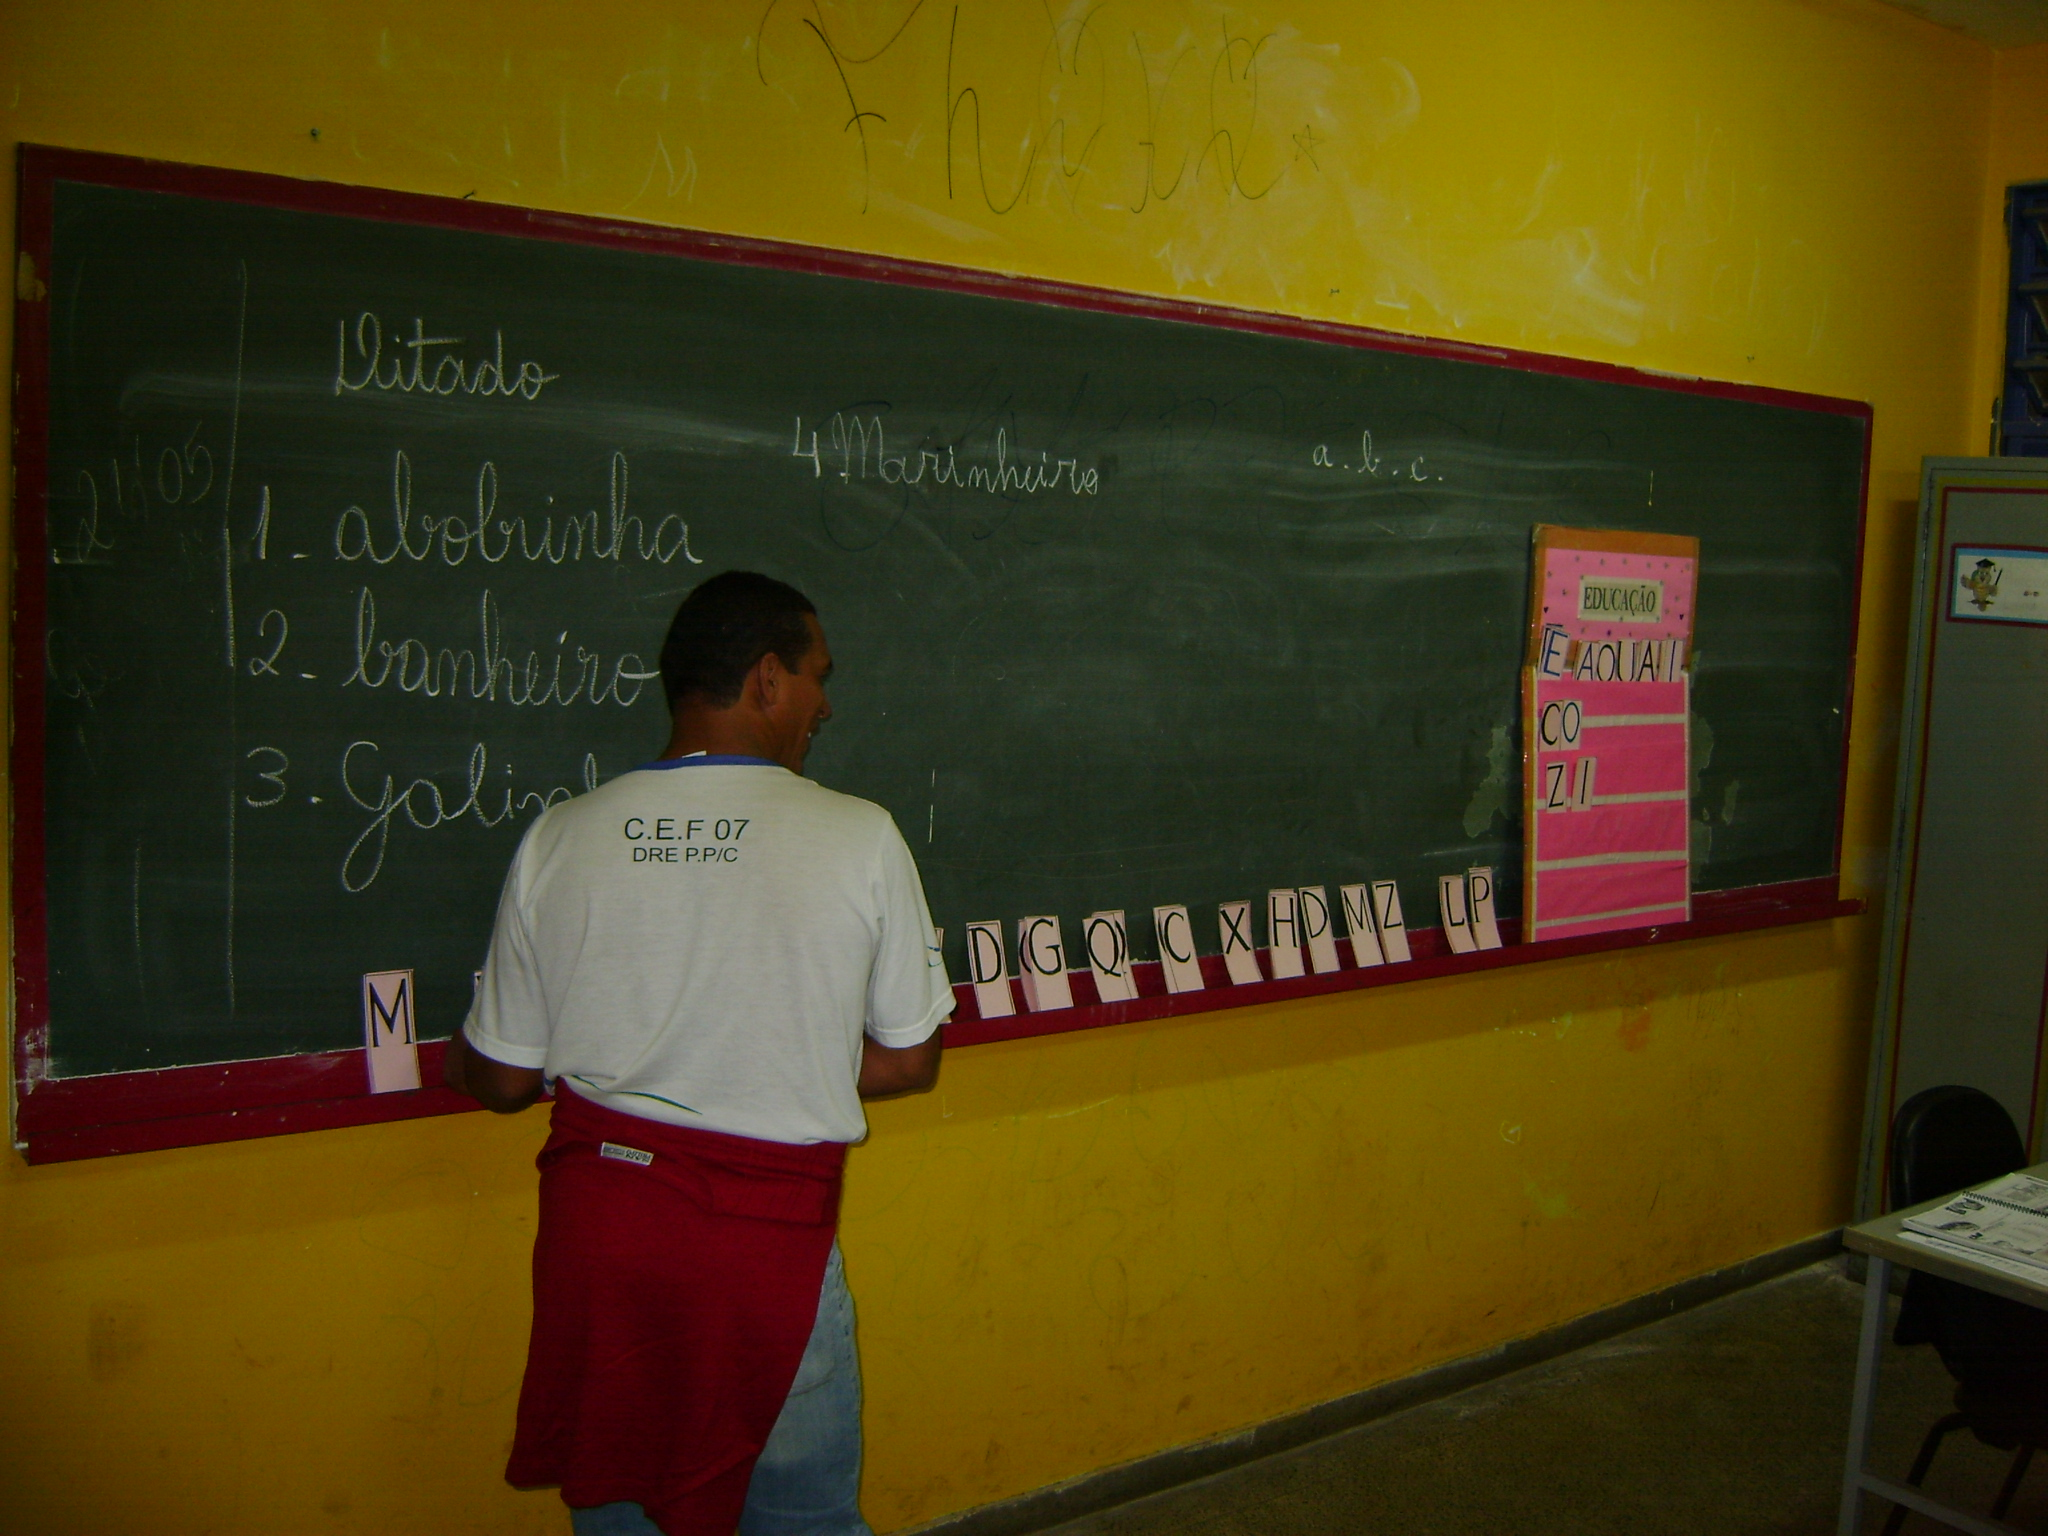 Fotos de EJA no CEF07 Asa Norte (2008)